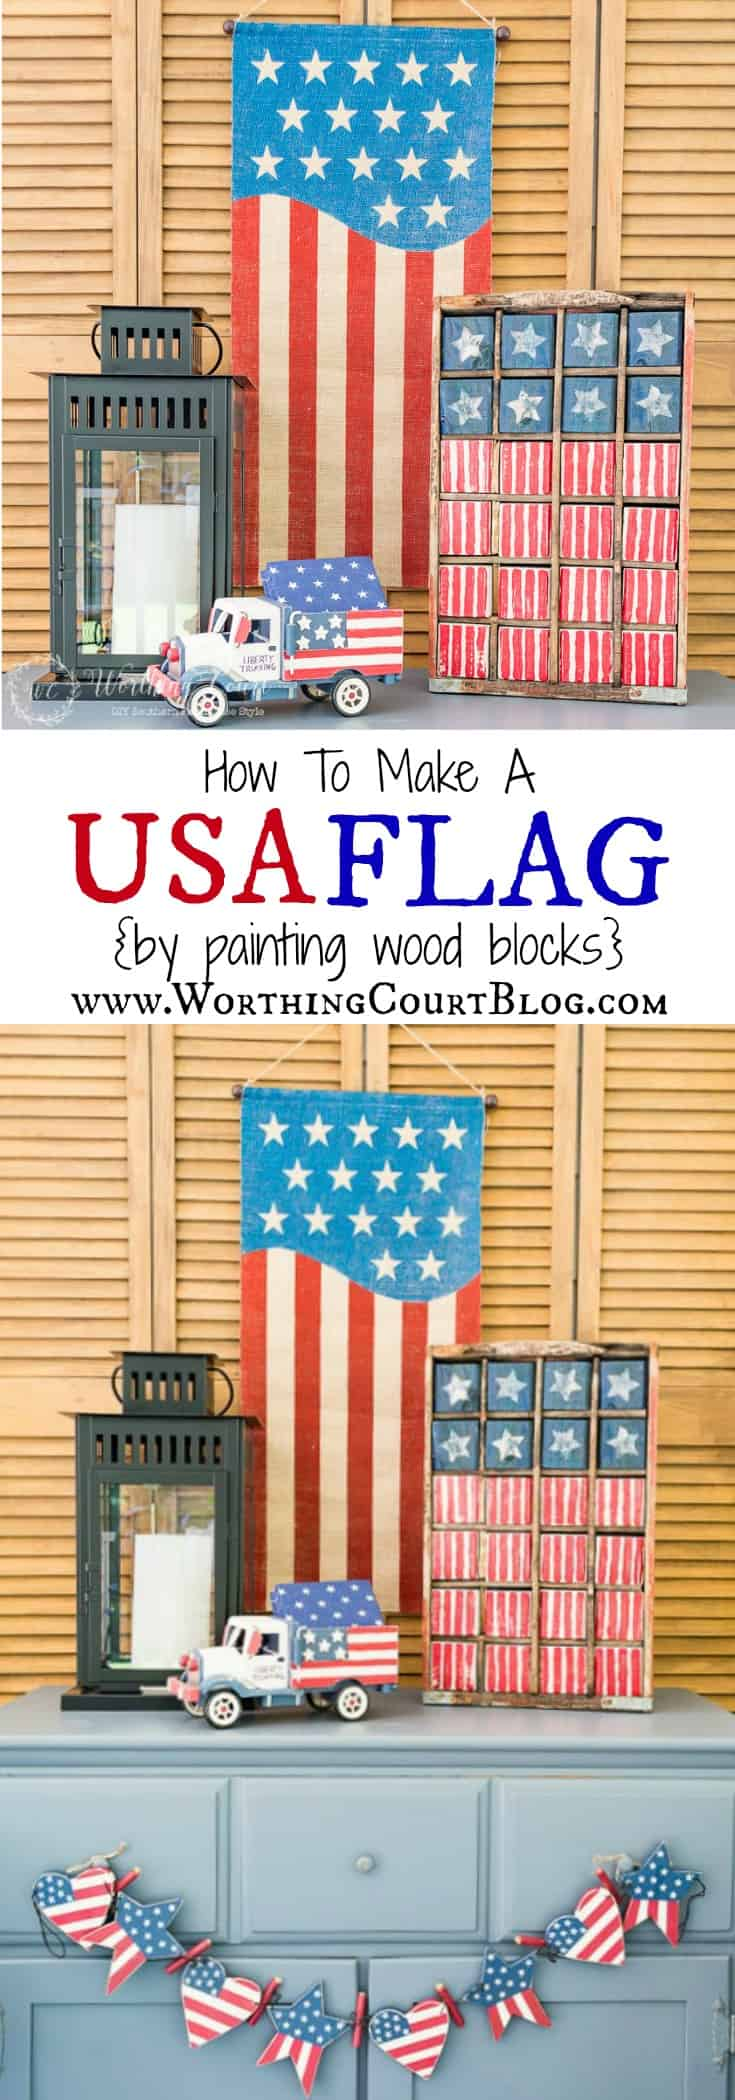 An easy and fun patriotic craft for Memorial Day, Flag Day and July 4th. How to create a vintage Americana look flag by painted wood blocks. Even kids would love to take apart and put the USA flag back together.